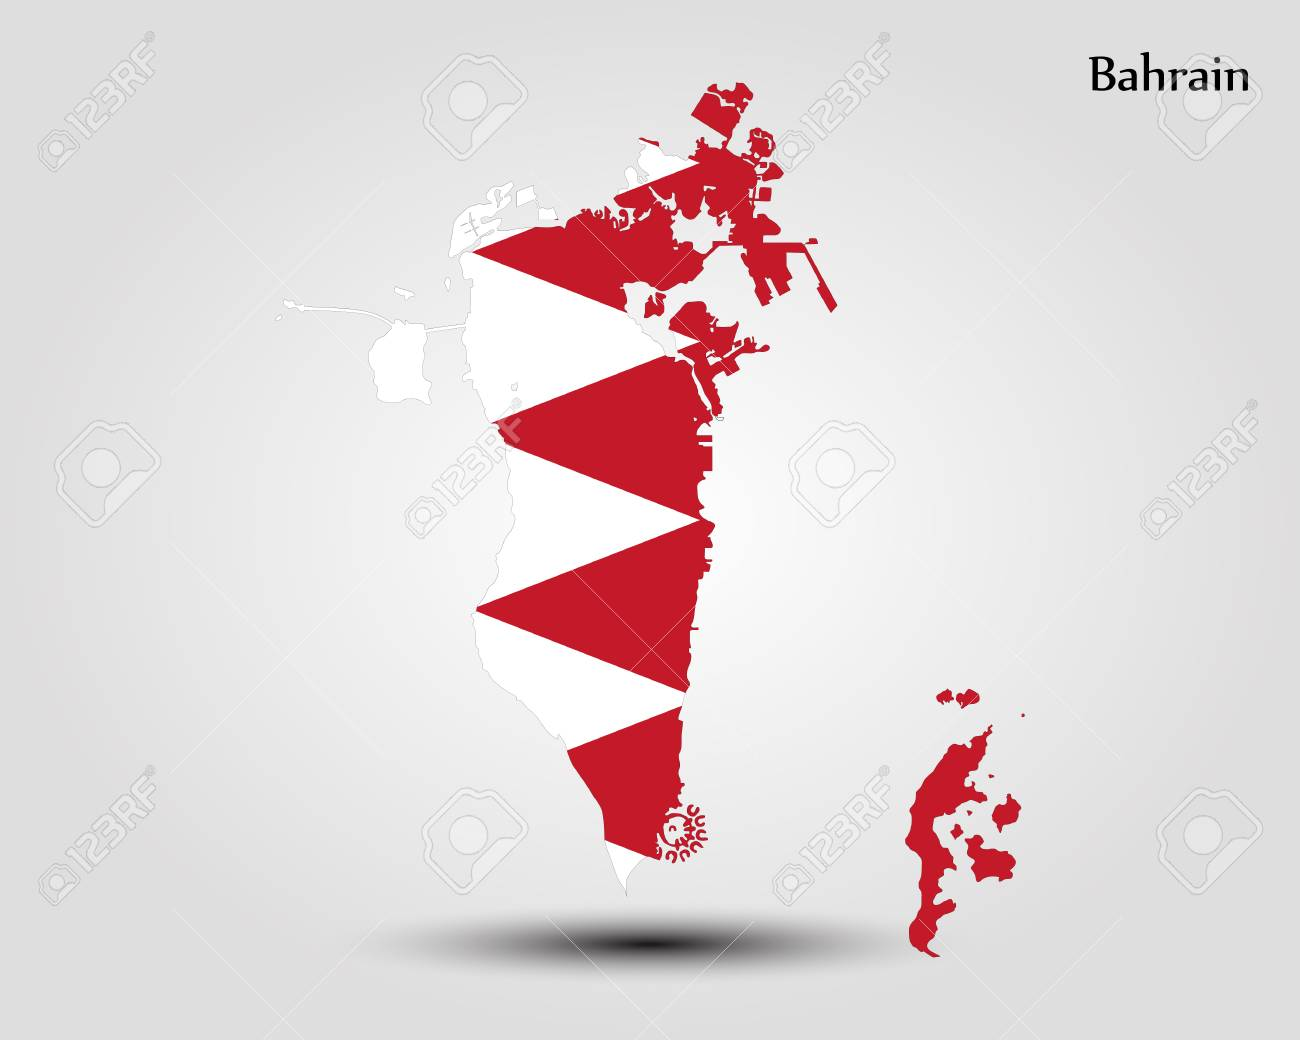 Kingdom of bahrain map regions vector illustration world map kingdom of bahrain map regions vector illustration world map foto de archivo 89750419 gumiabroncs Images